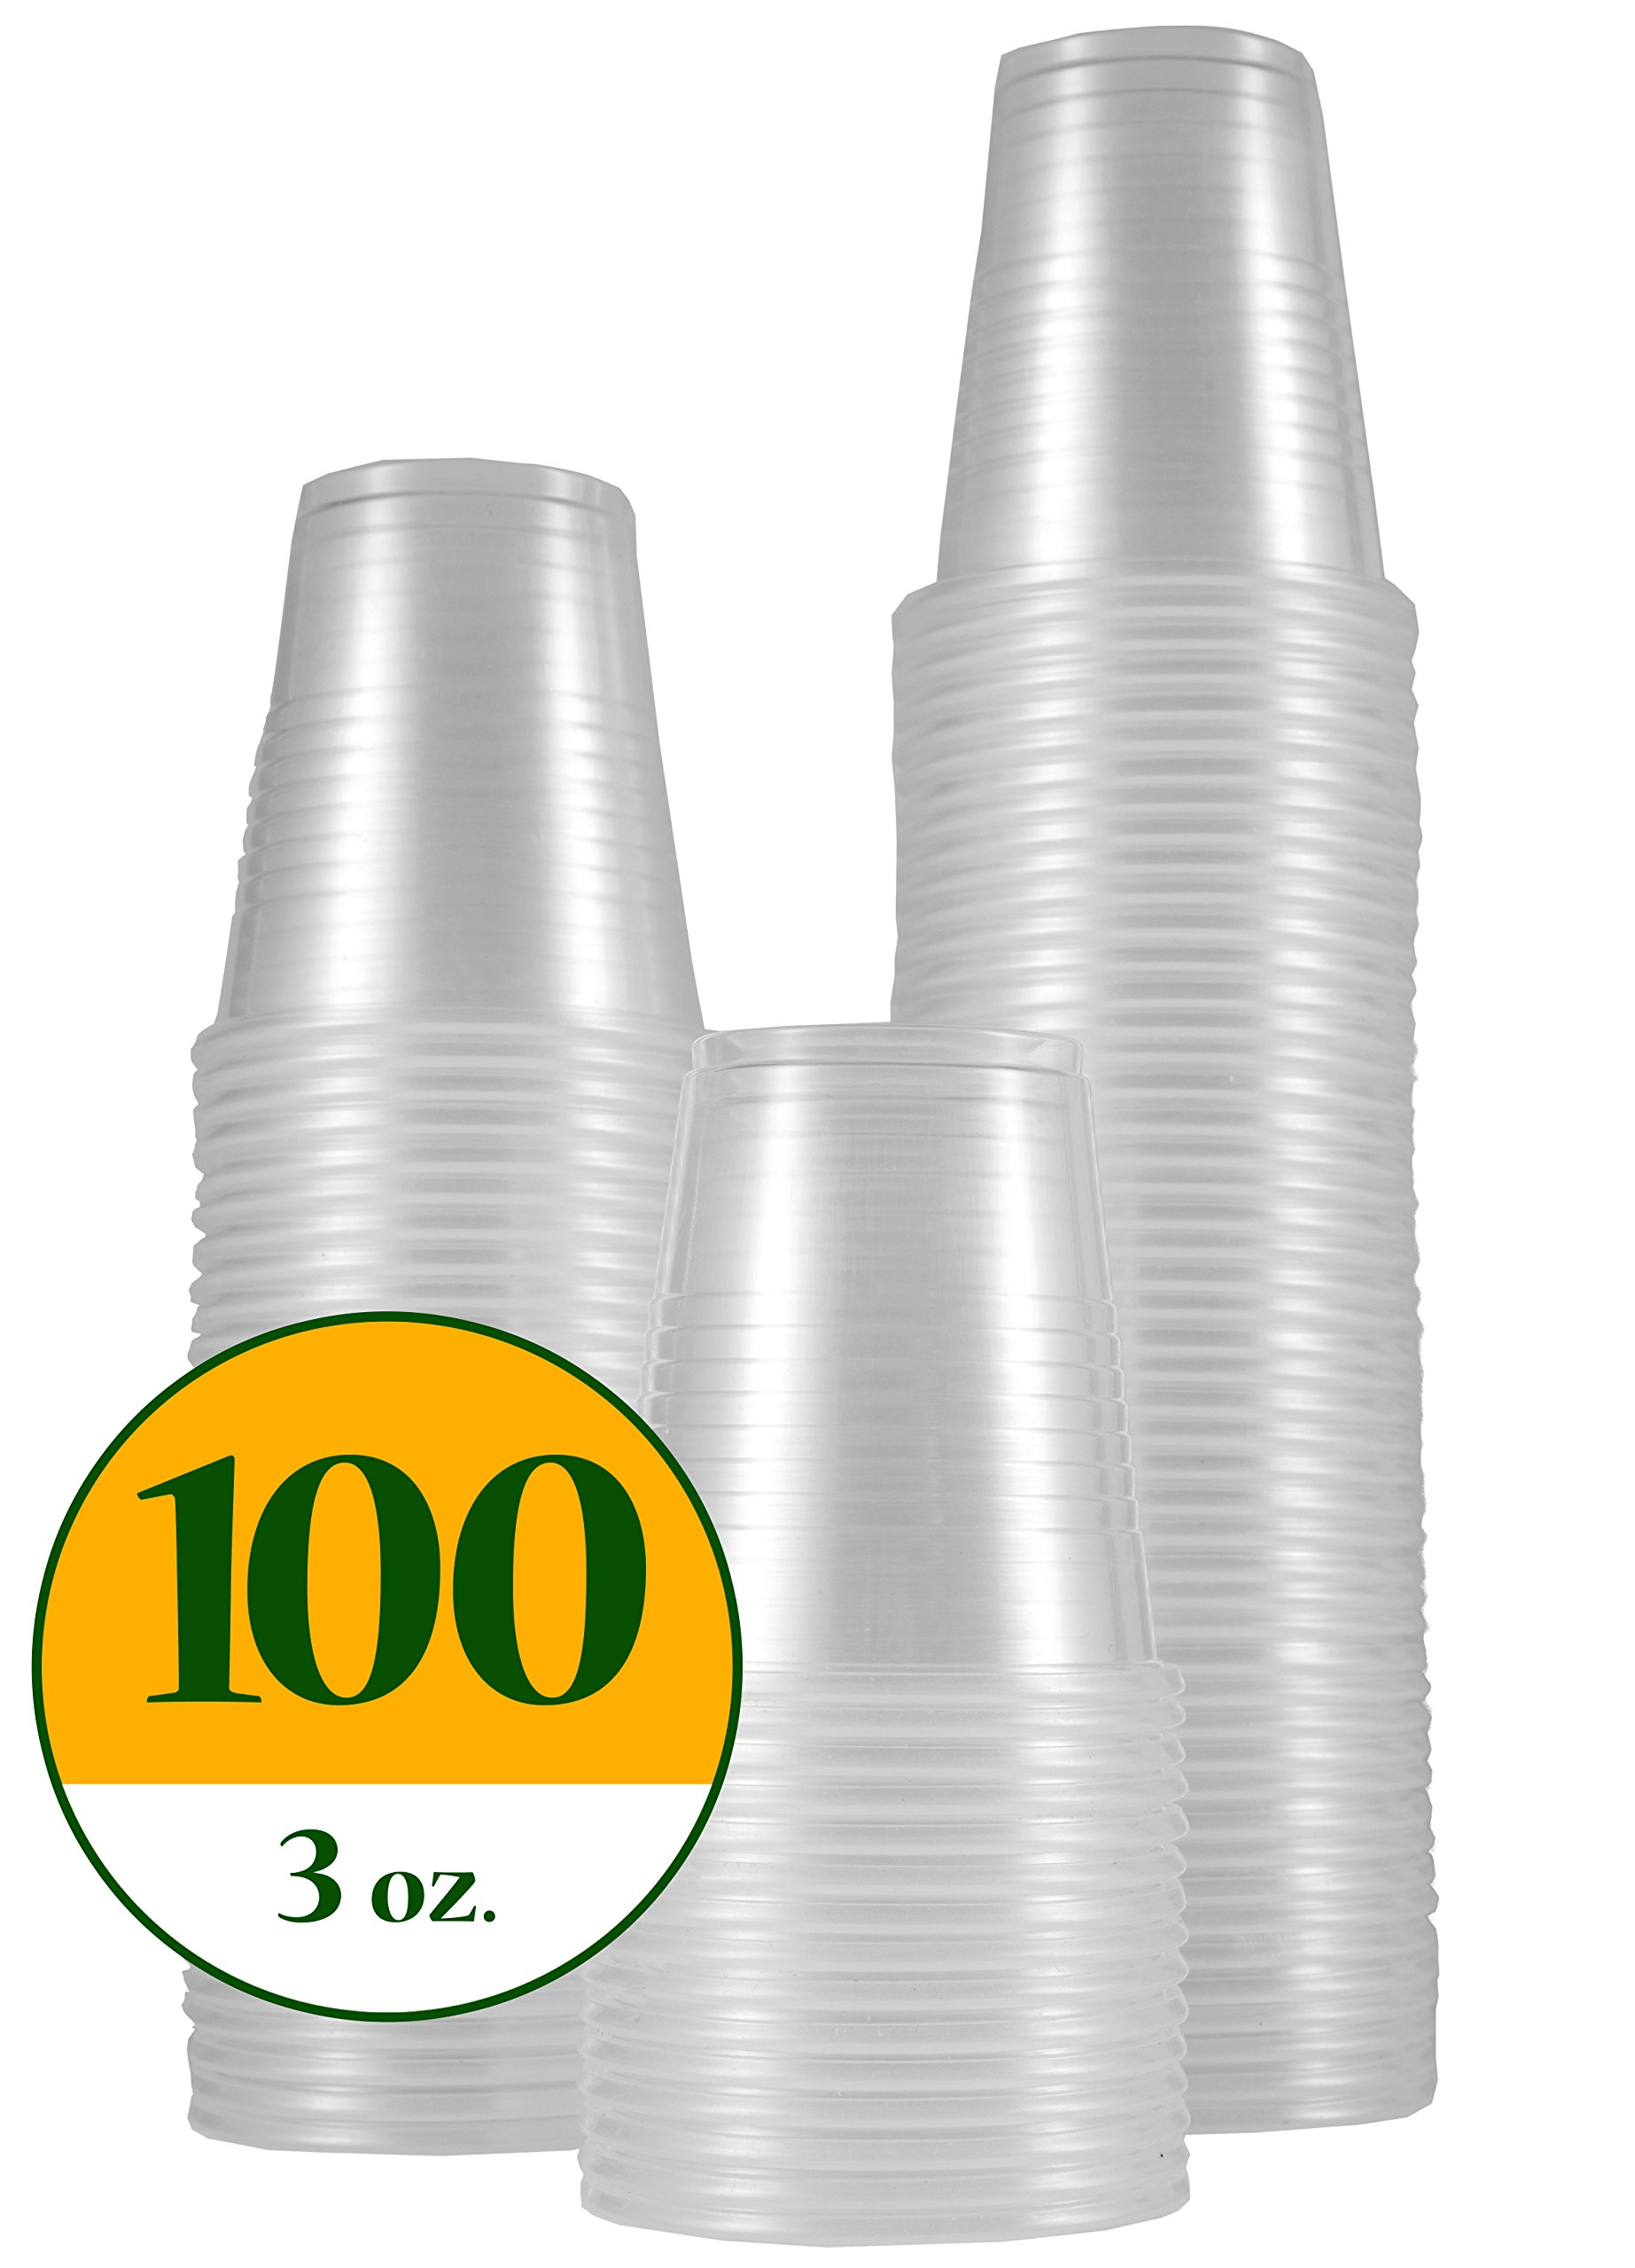 DisposoWare 3 oz. Disposable Plastic Cups 100 count